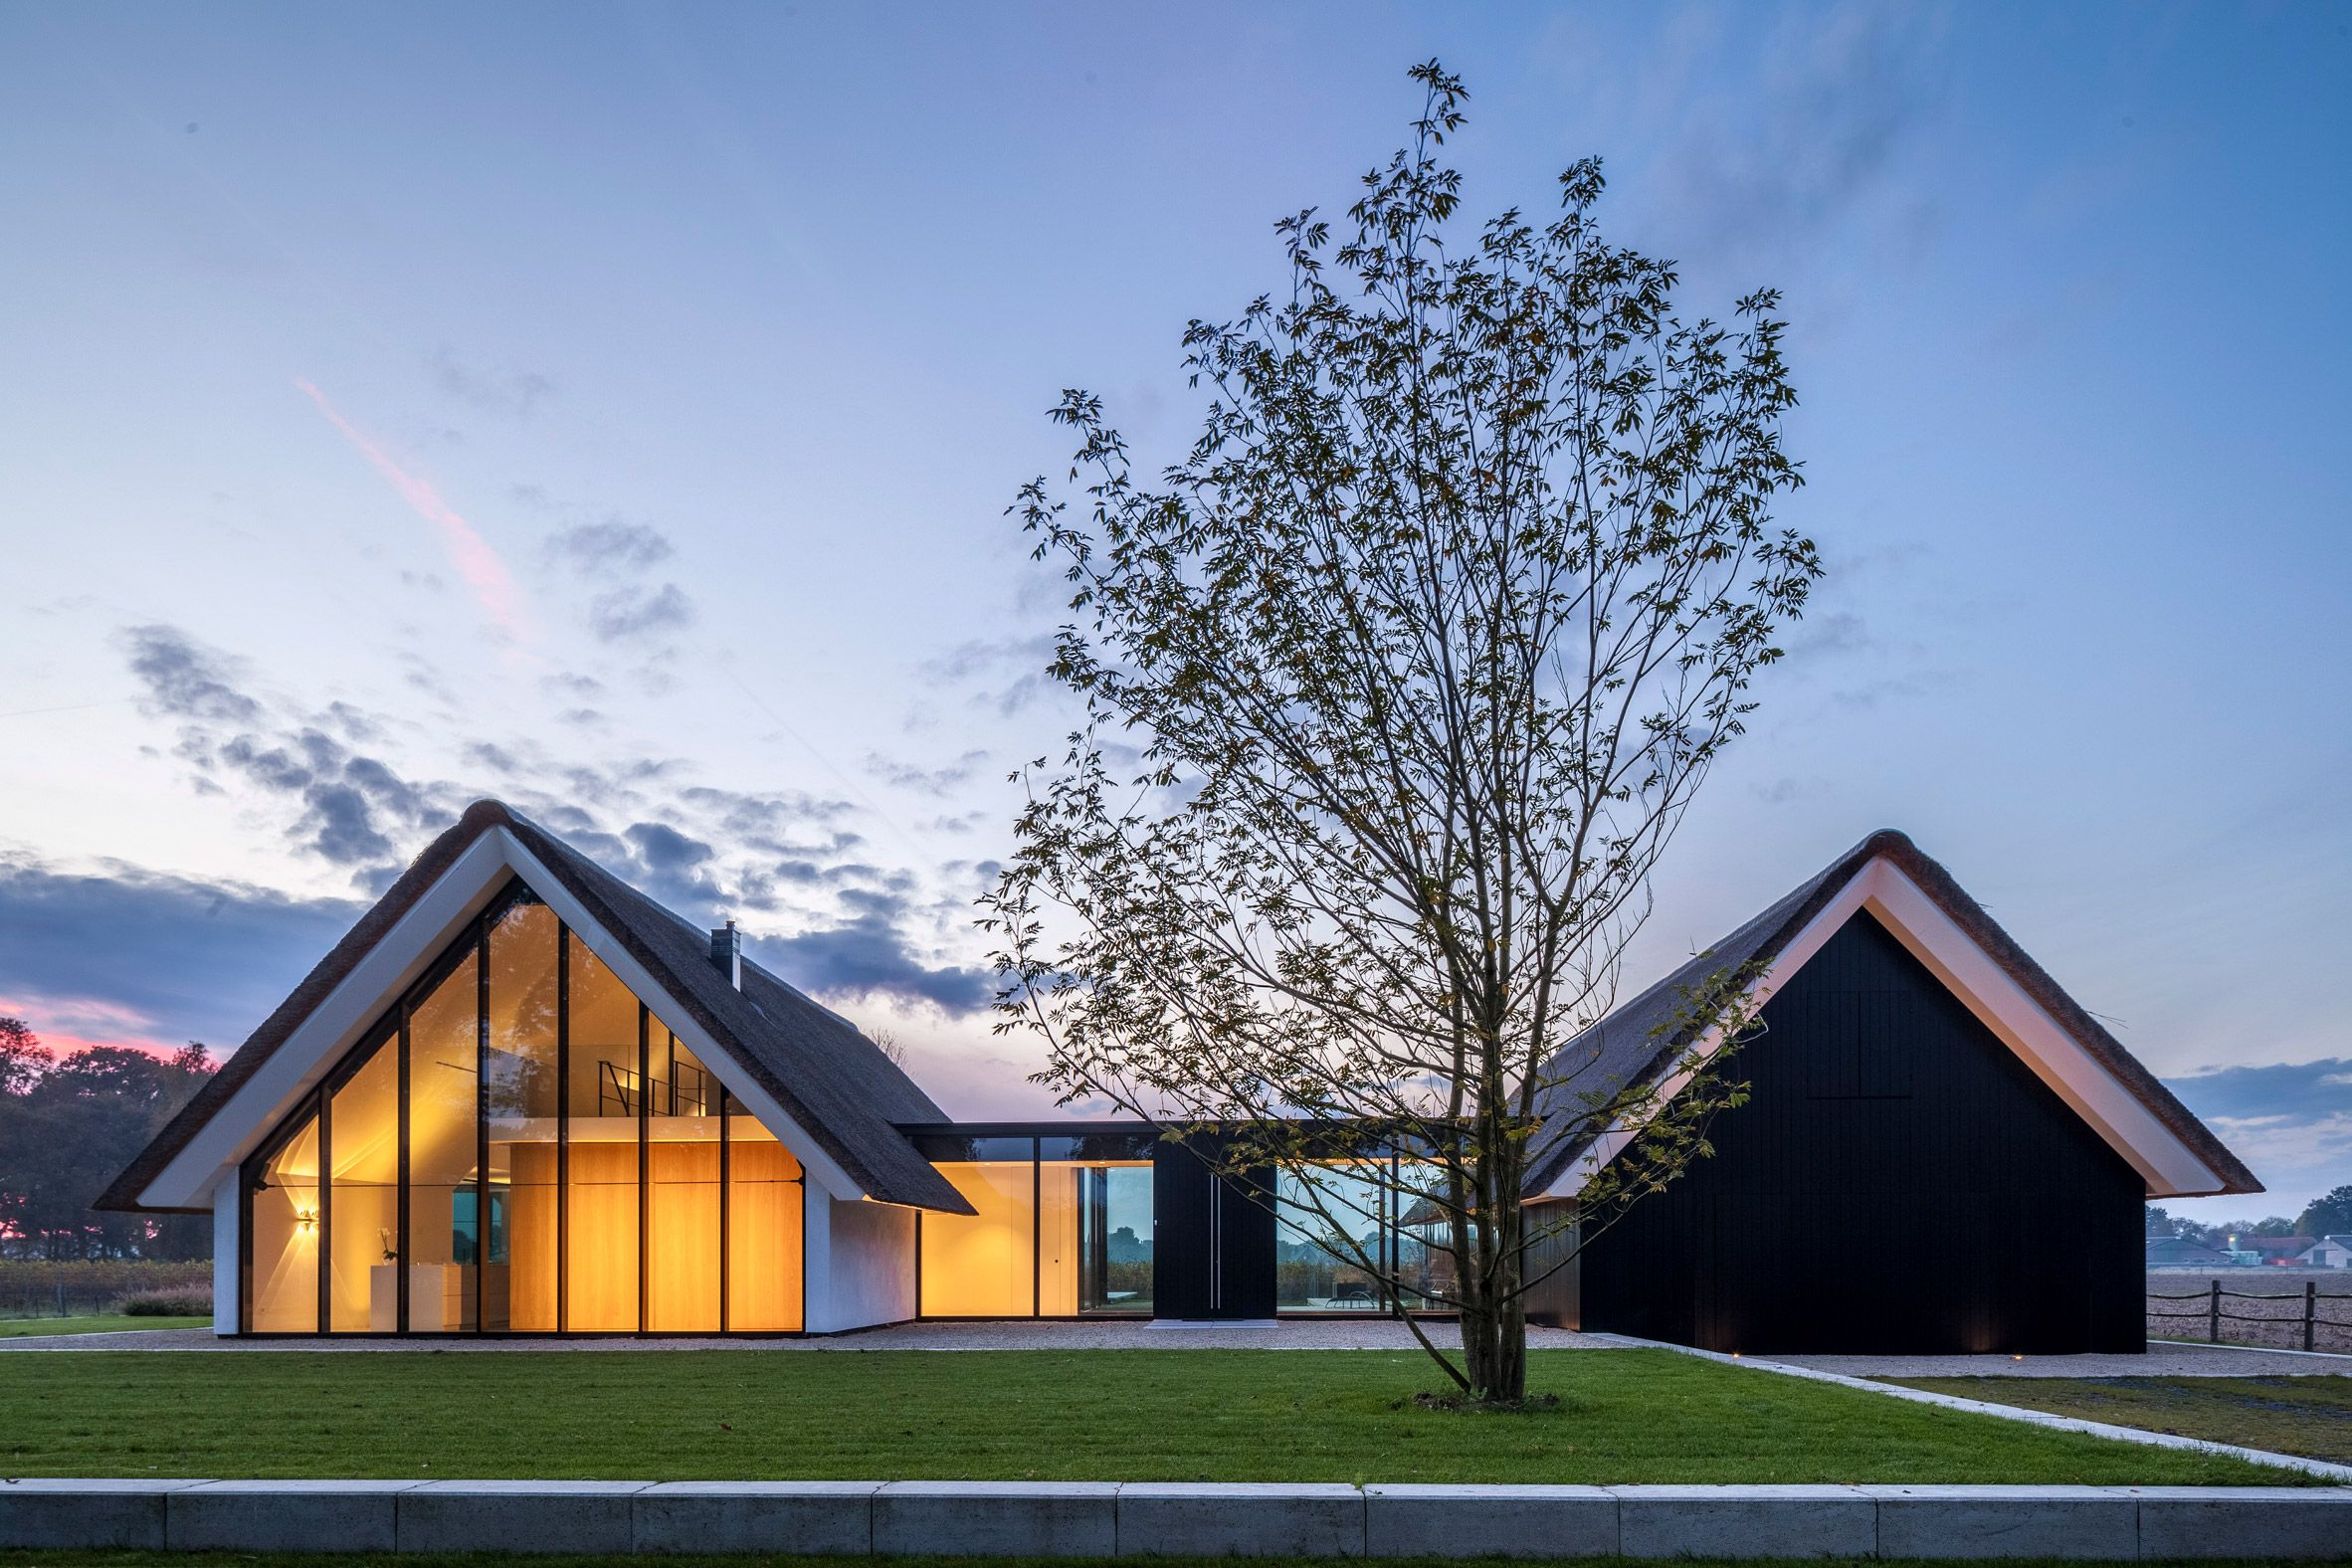 The Thatched Roof Is A Beloved Architectural Tradition Deployed Exquisitely In This Modern Dutch Home Thatched Cottage Modern House Design Modern Architecture